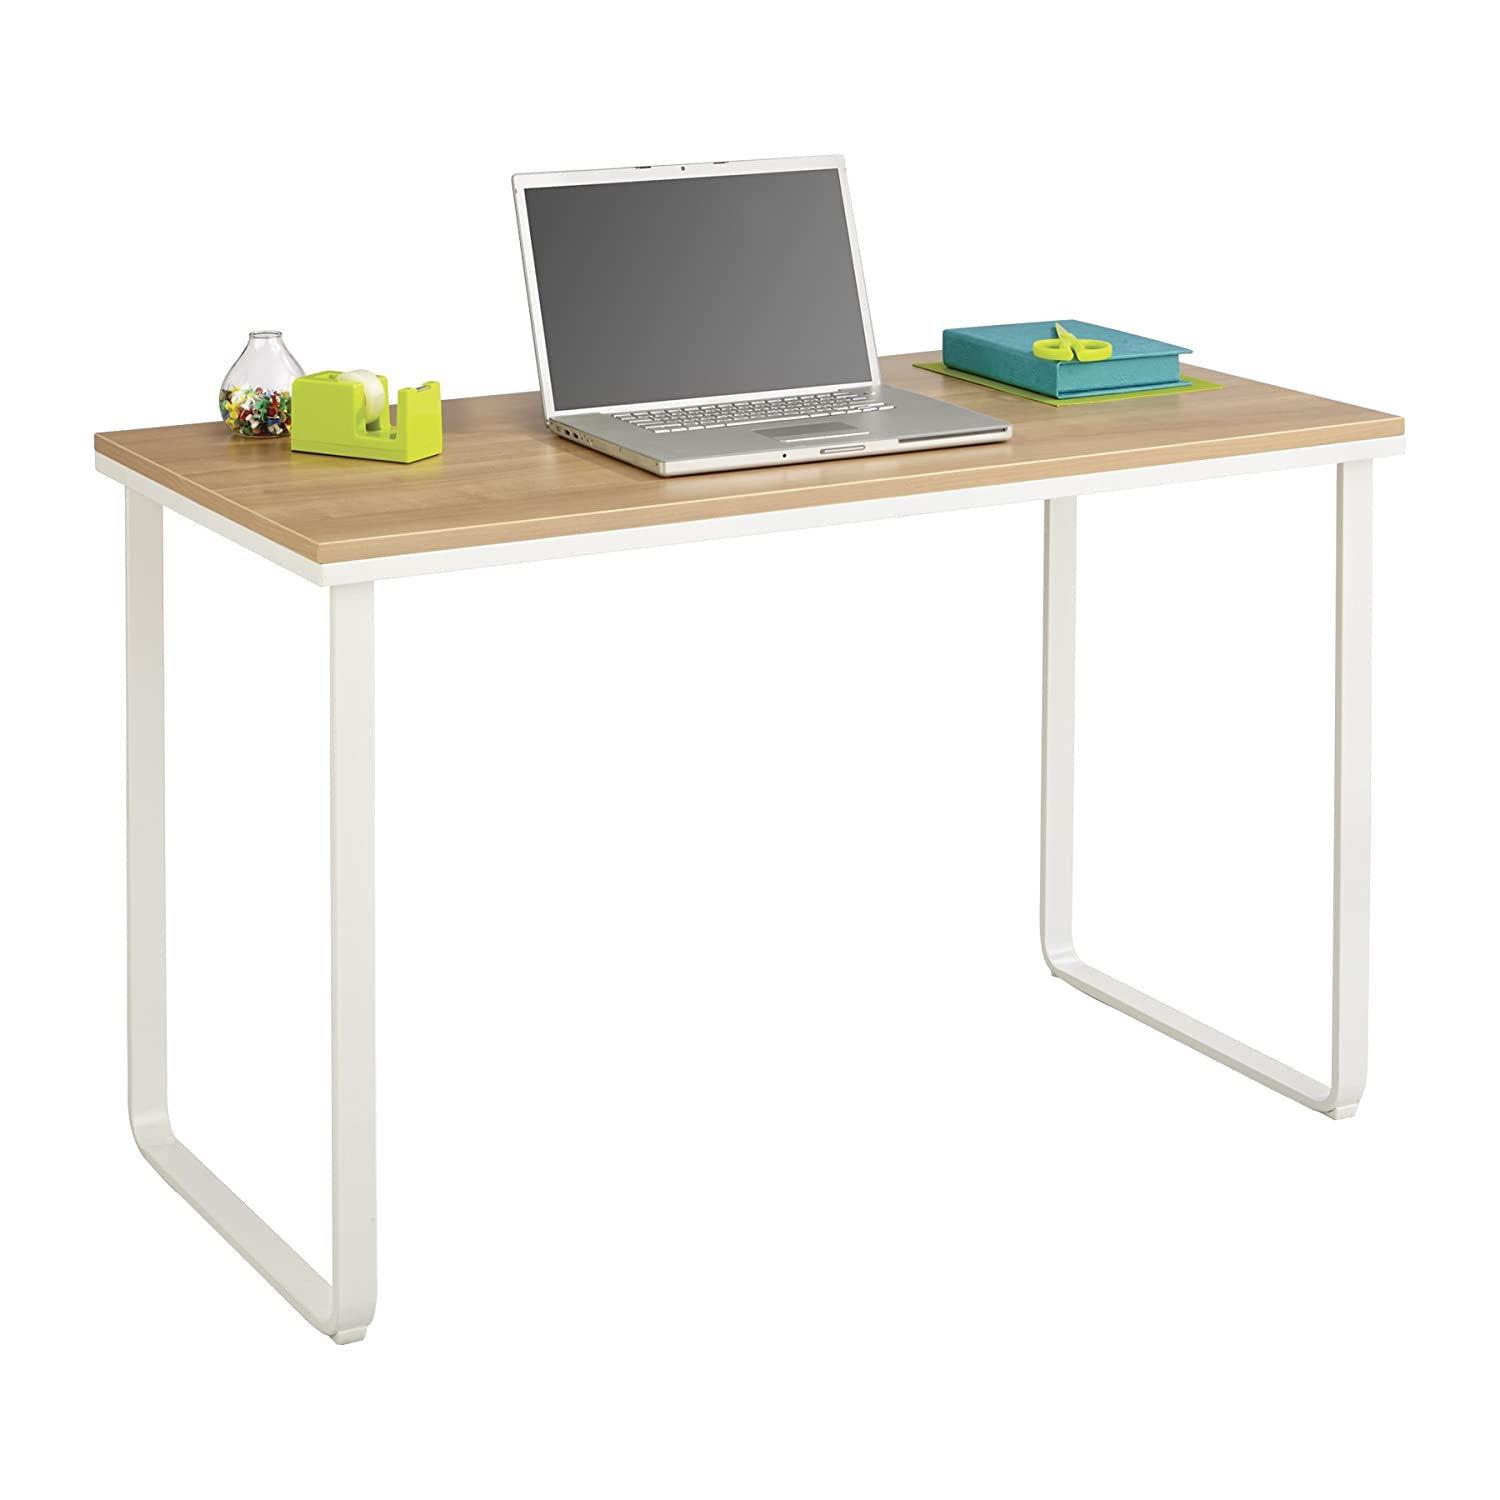 Amazon.com: Safco Products 1943BLSL Simple Design Table Desk with ...